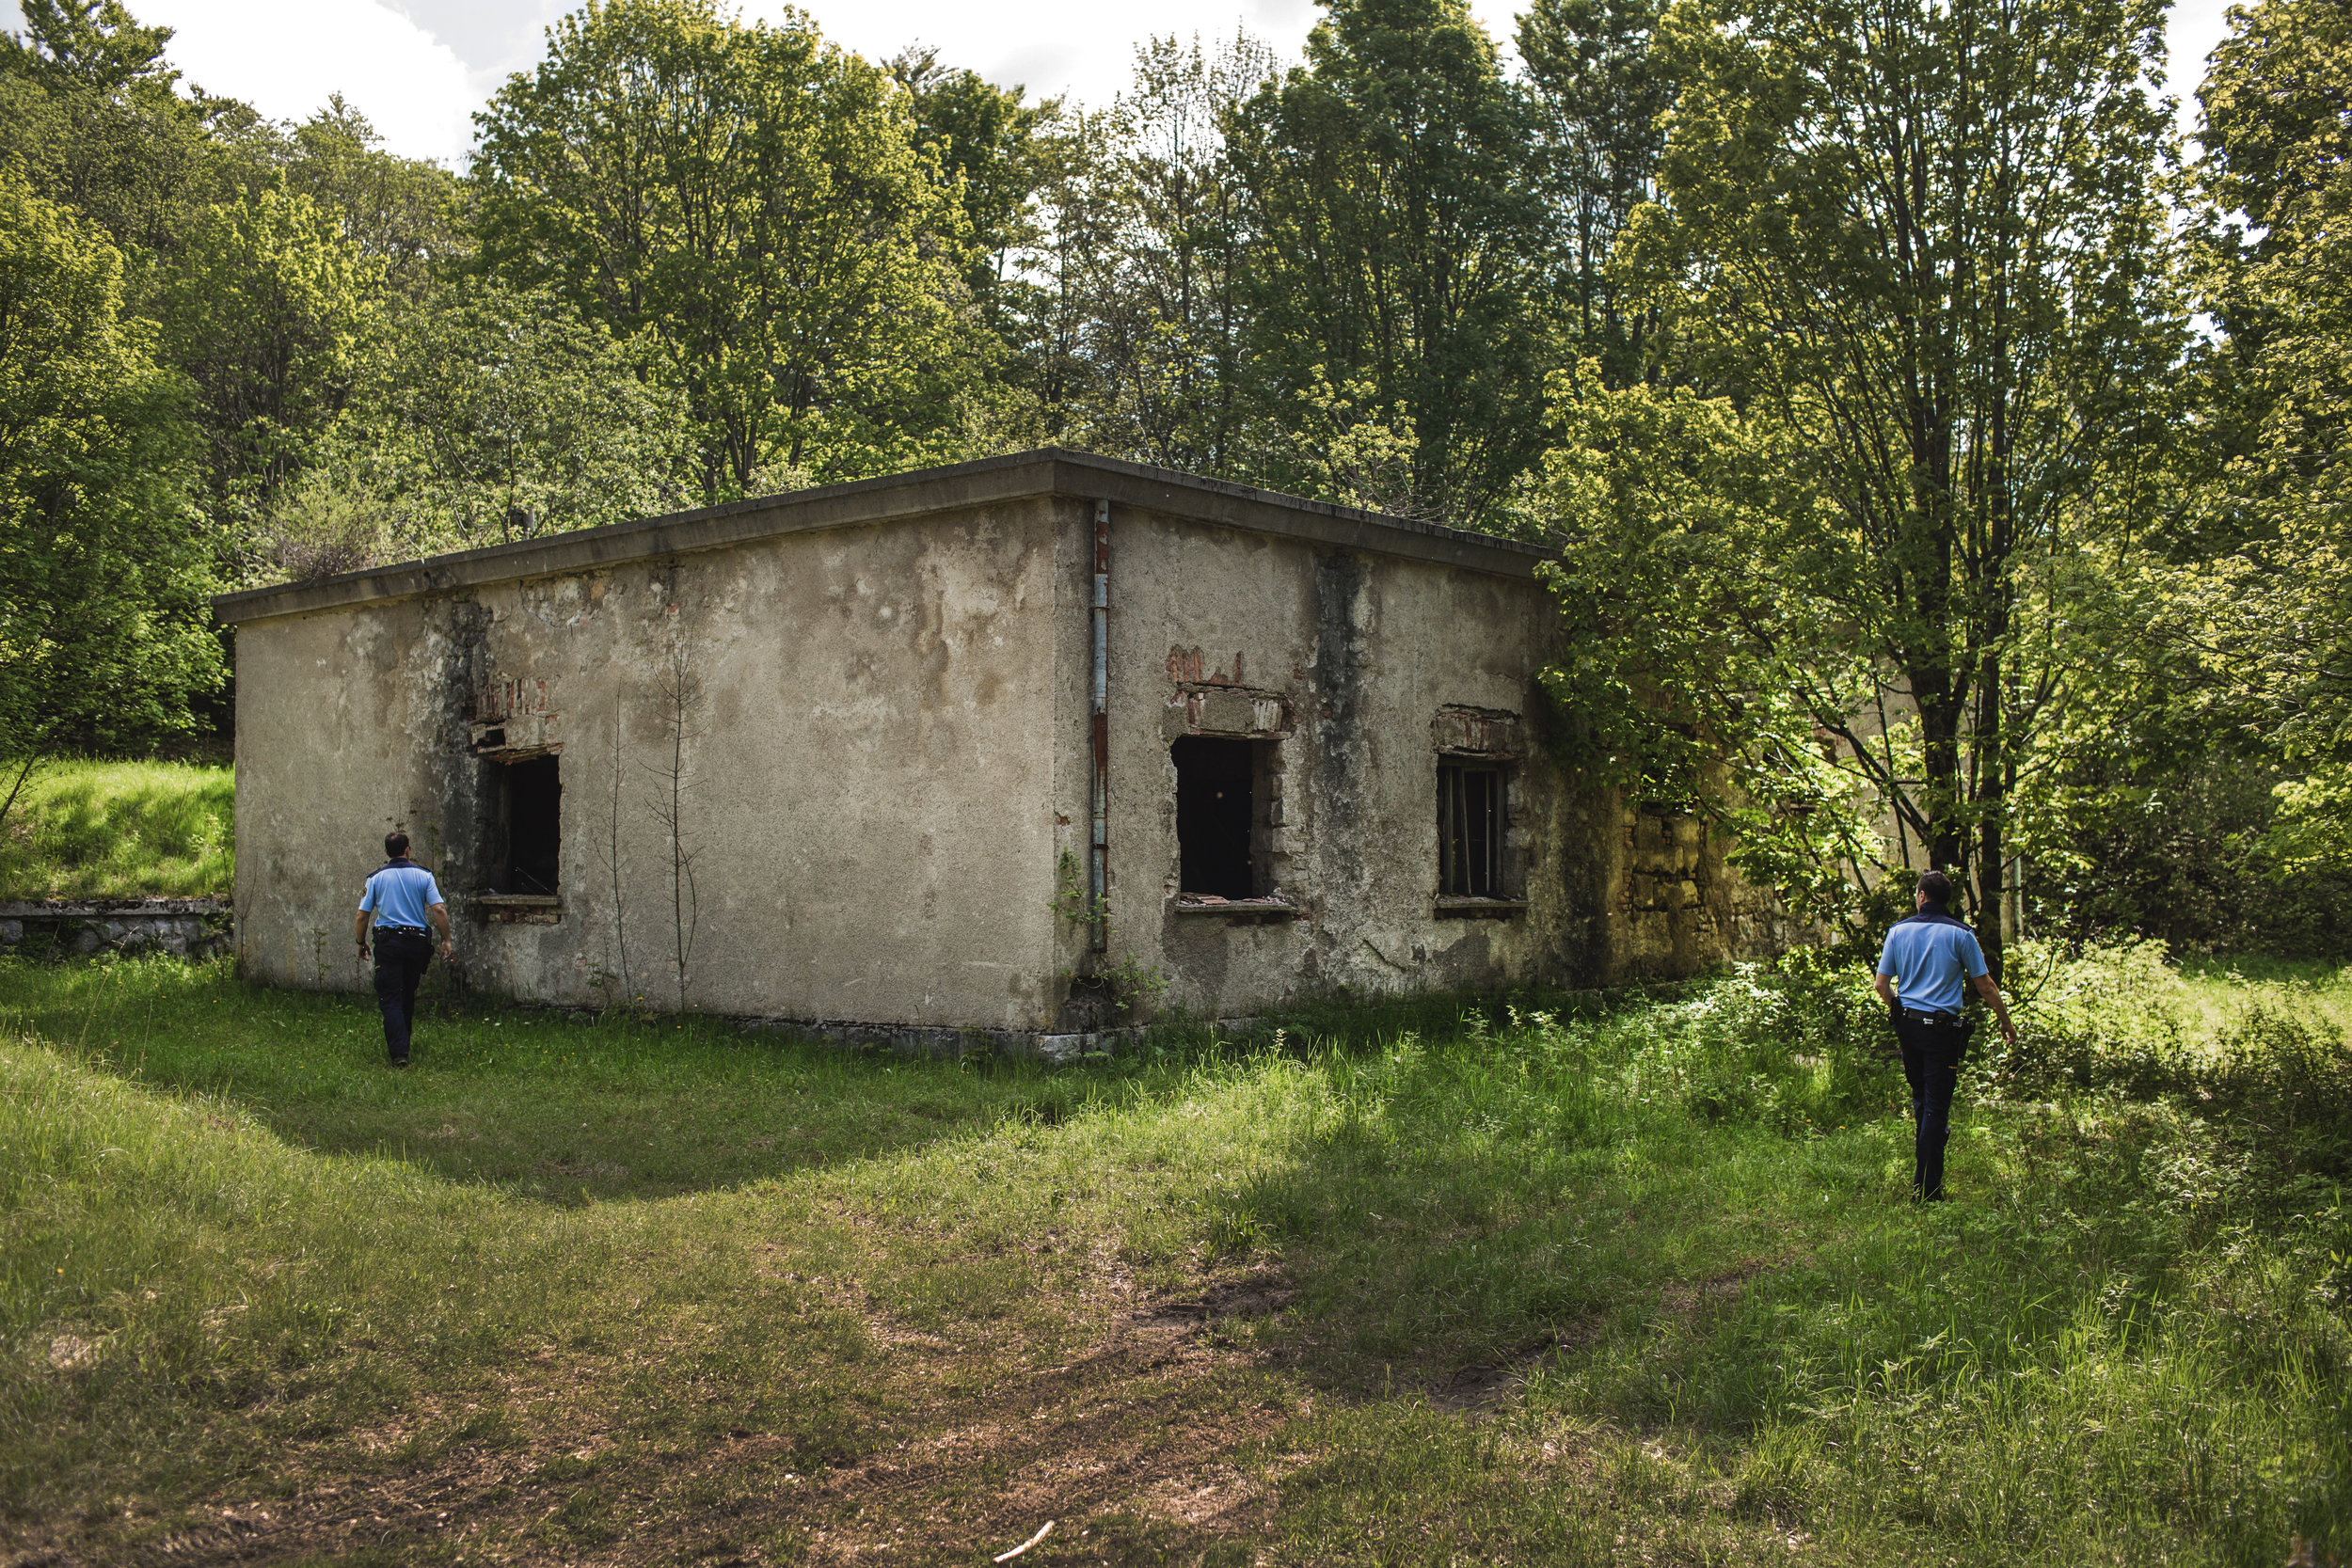 Slovenian police inspect an abandoned house in a forest at the border between Slovenia and Croatia, near town Ilirska Bistrica, Slovenia.